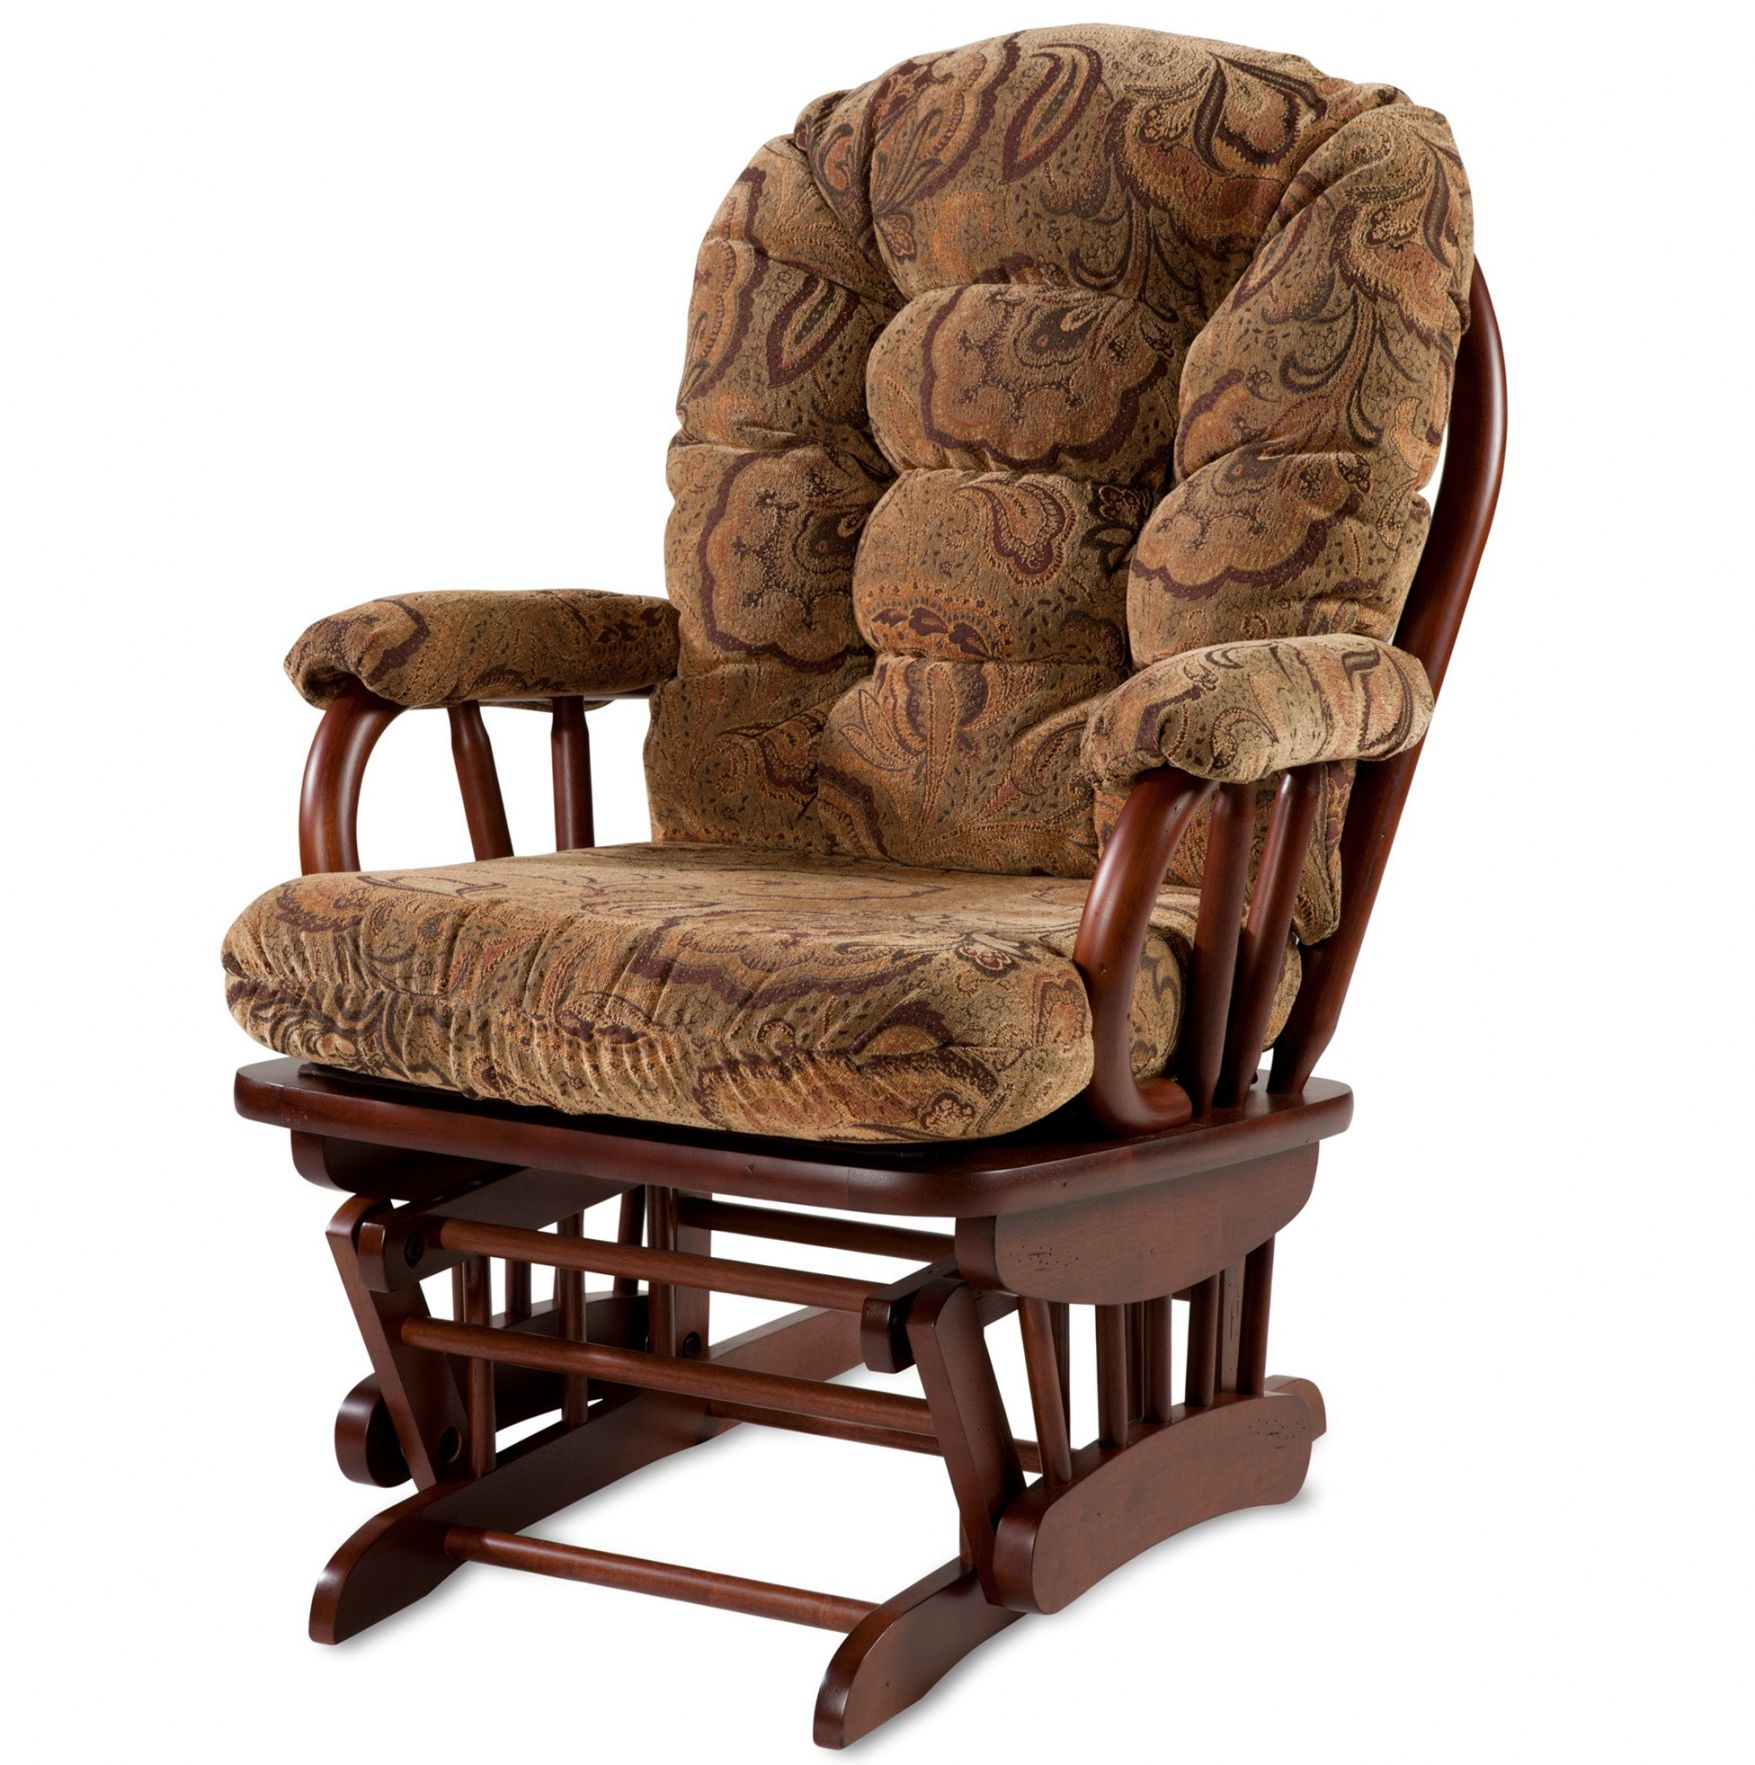 50+ Glider Chair Walmart Cool Rustic Furniture Check